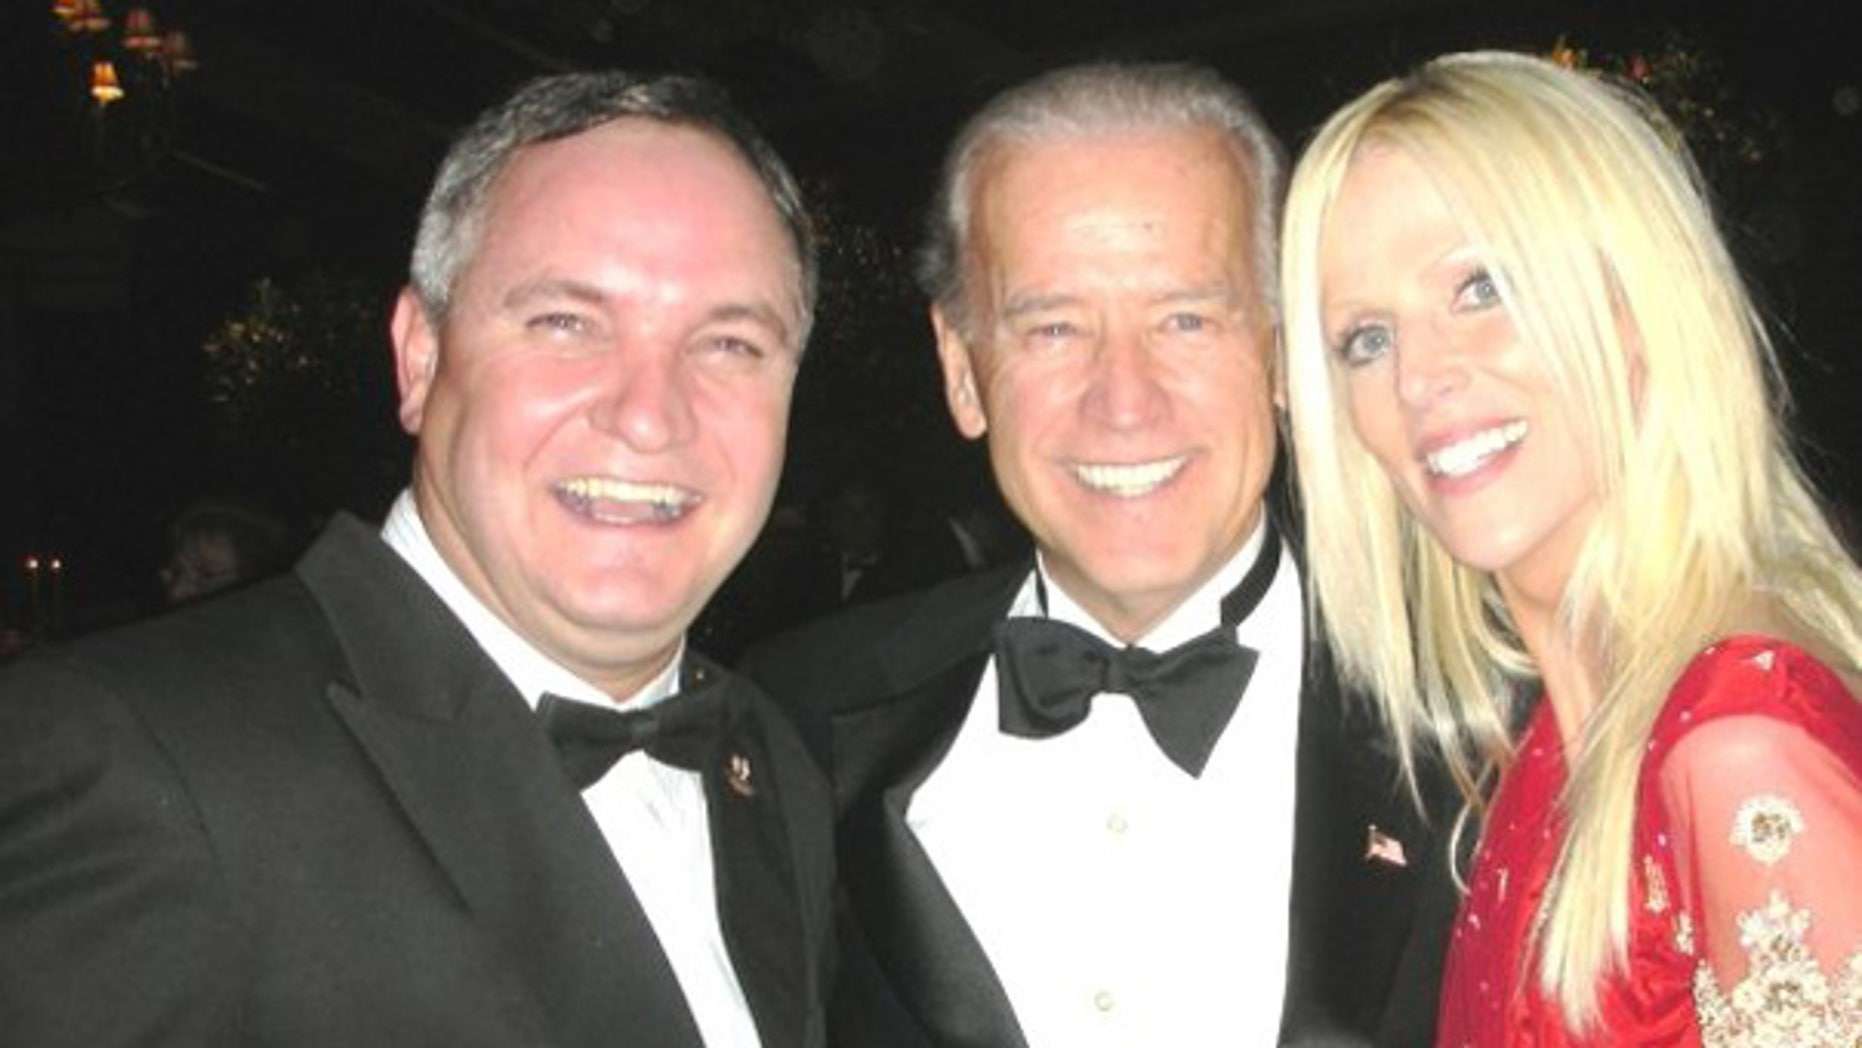 Virginia couple, seen in this photo posted on personal Facebook page, apparently breached security at a White House dinner.